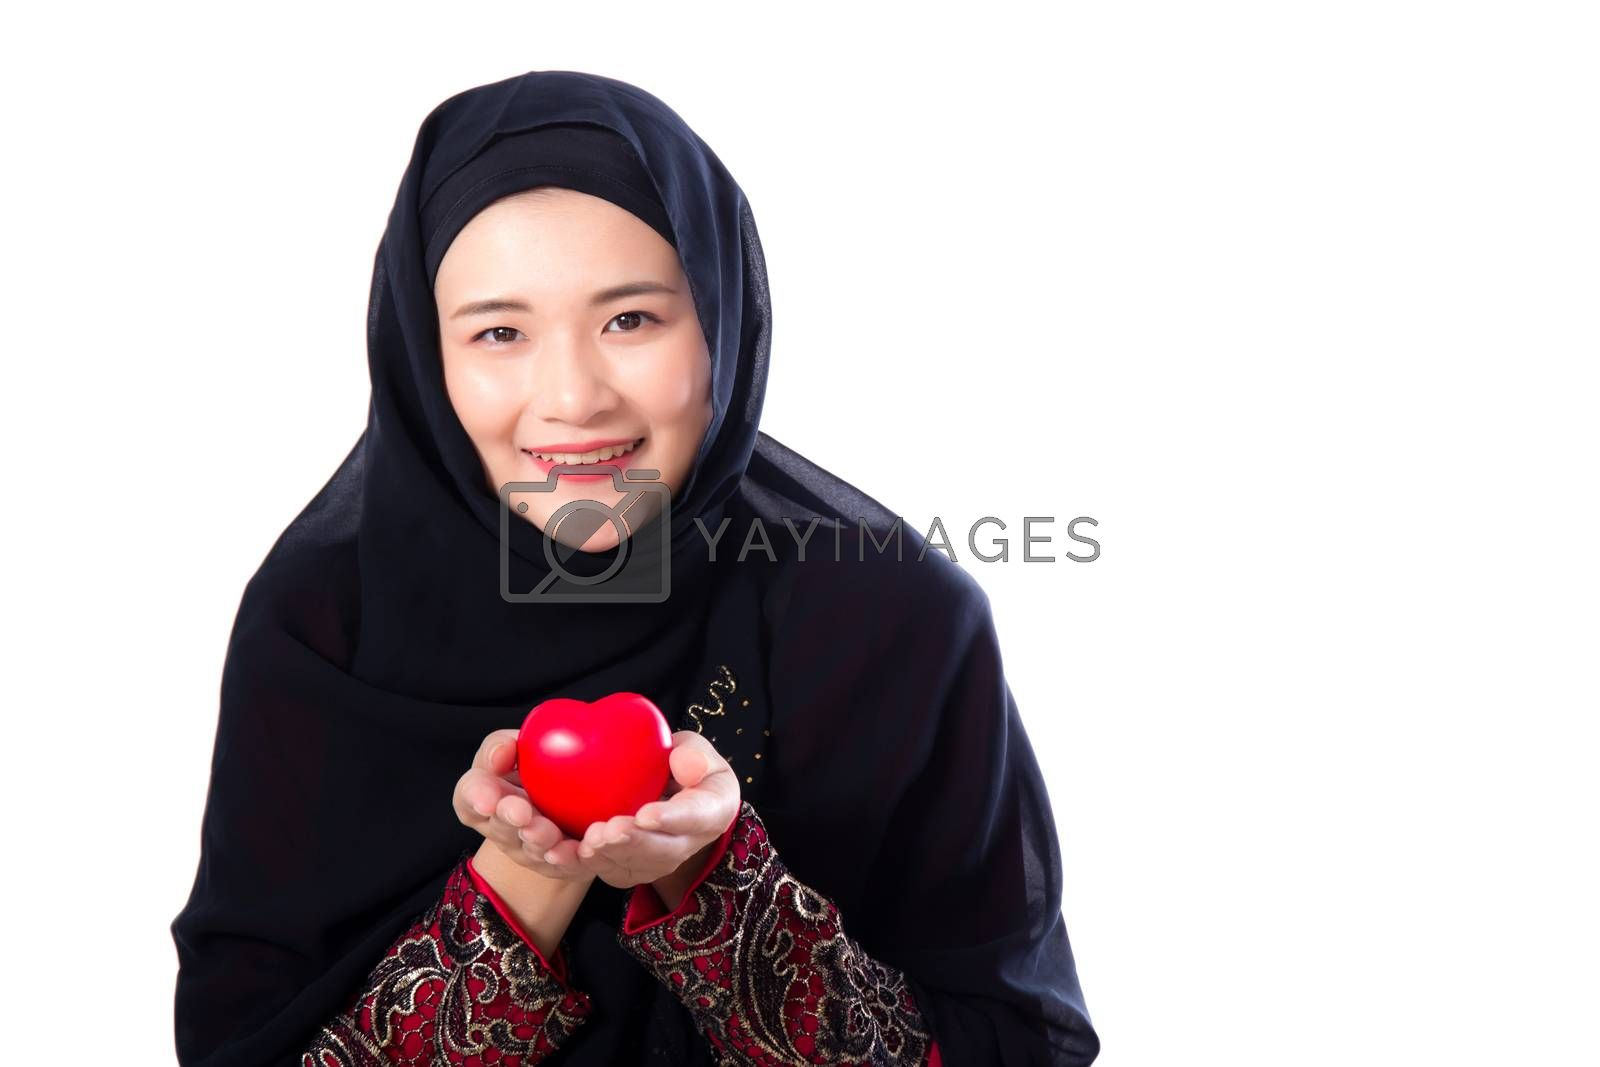 Portrait of young asian muslim woman holding red heart shaped pillow isolated on white background.